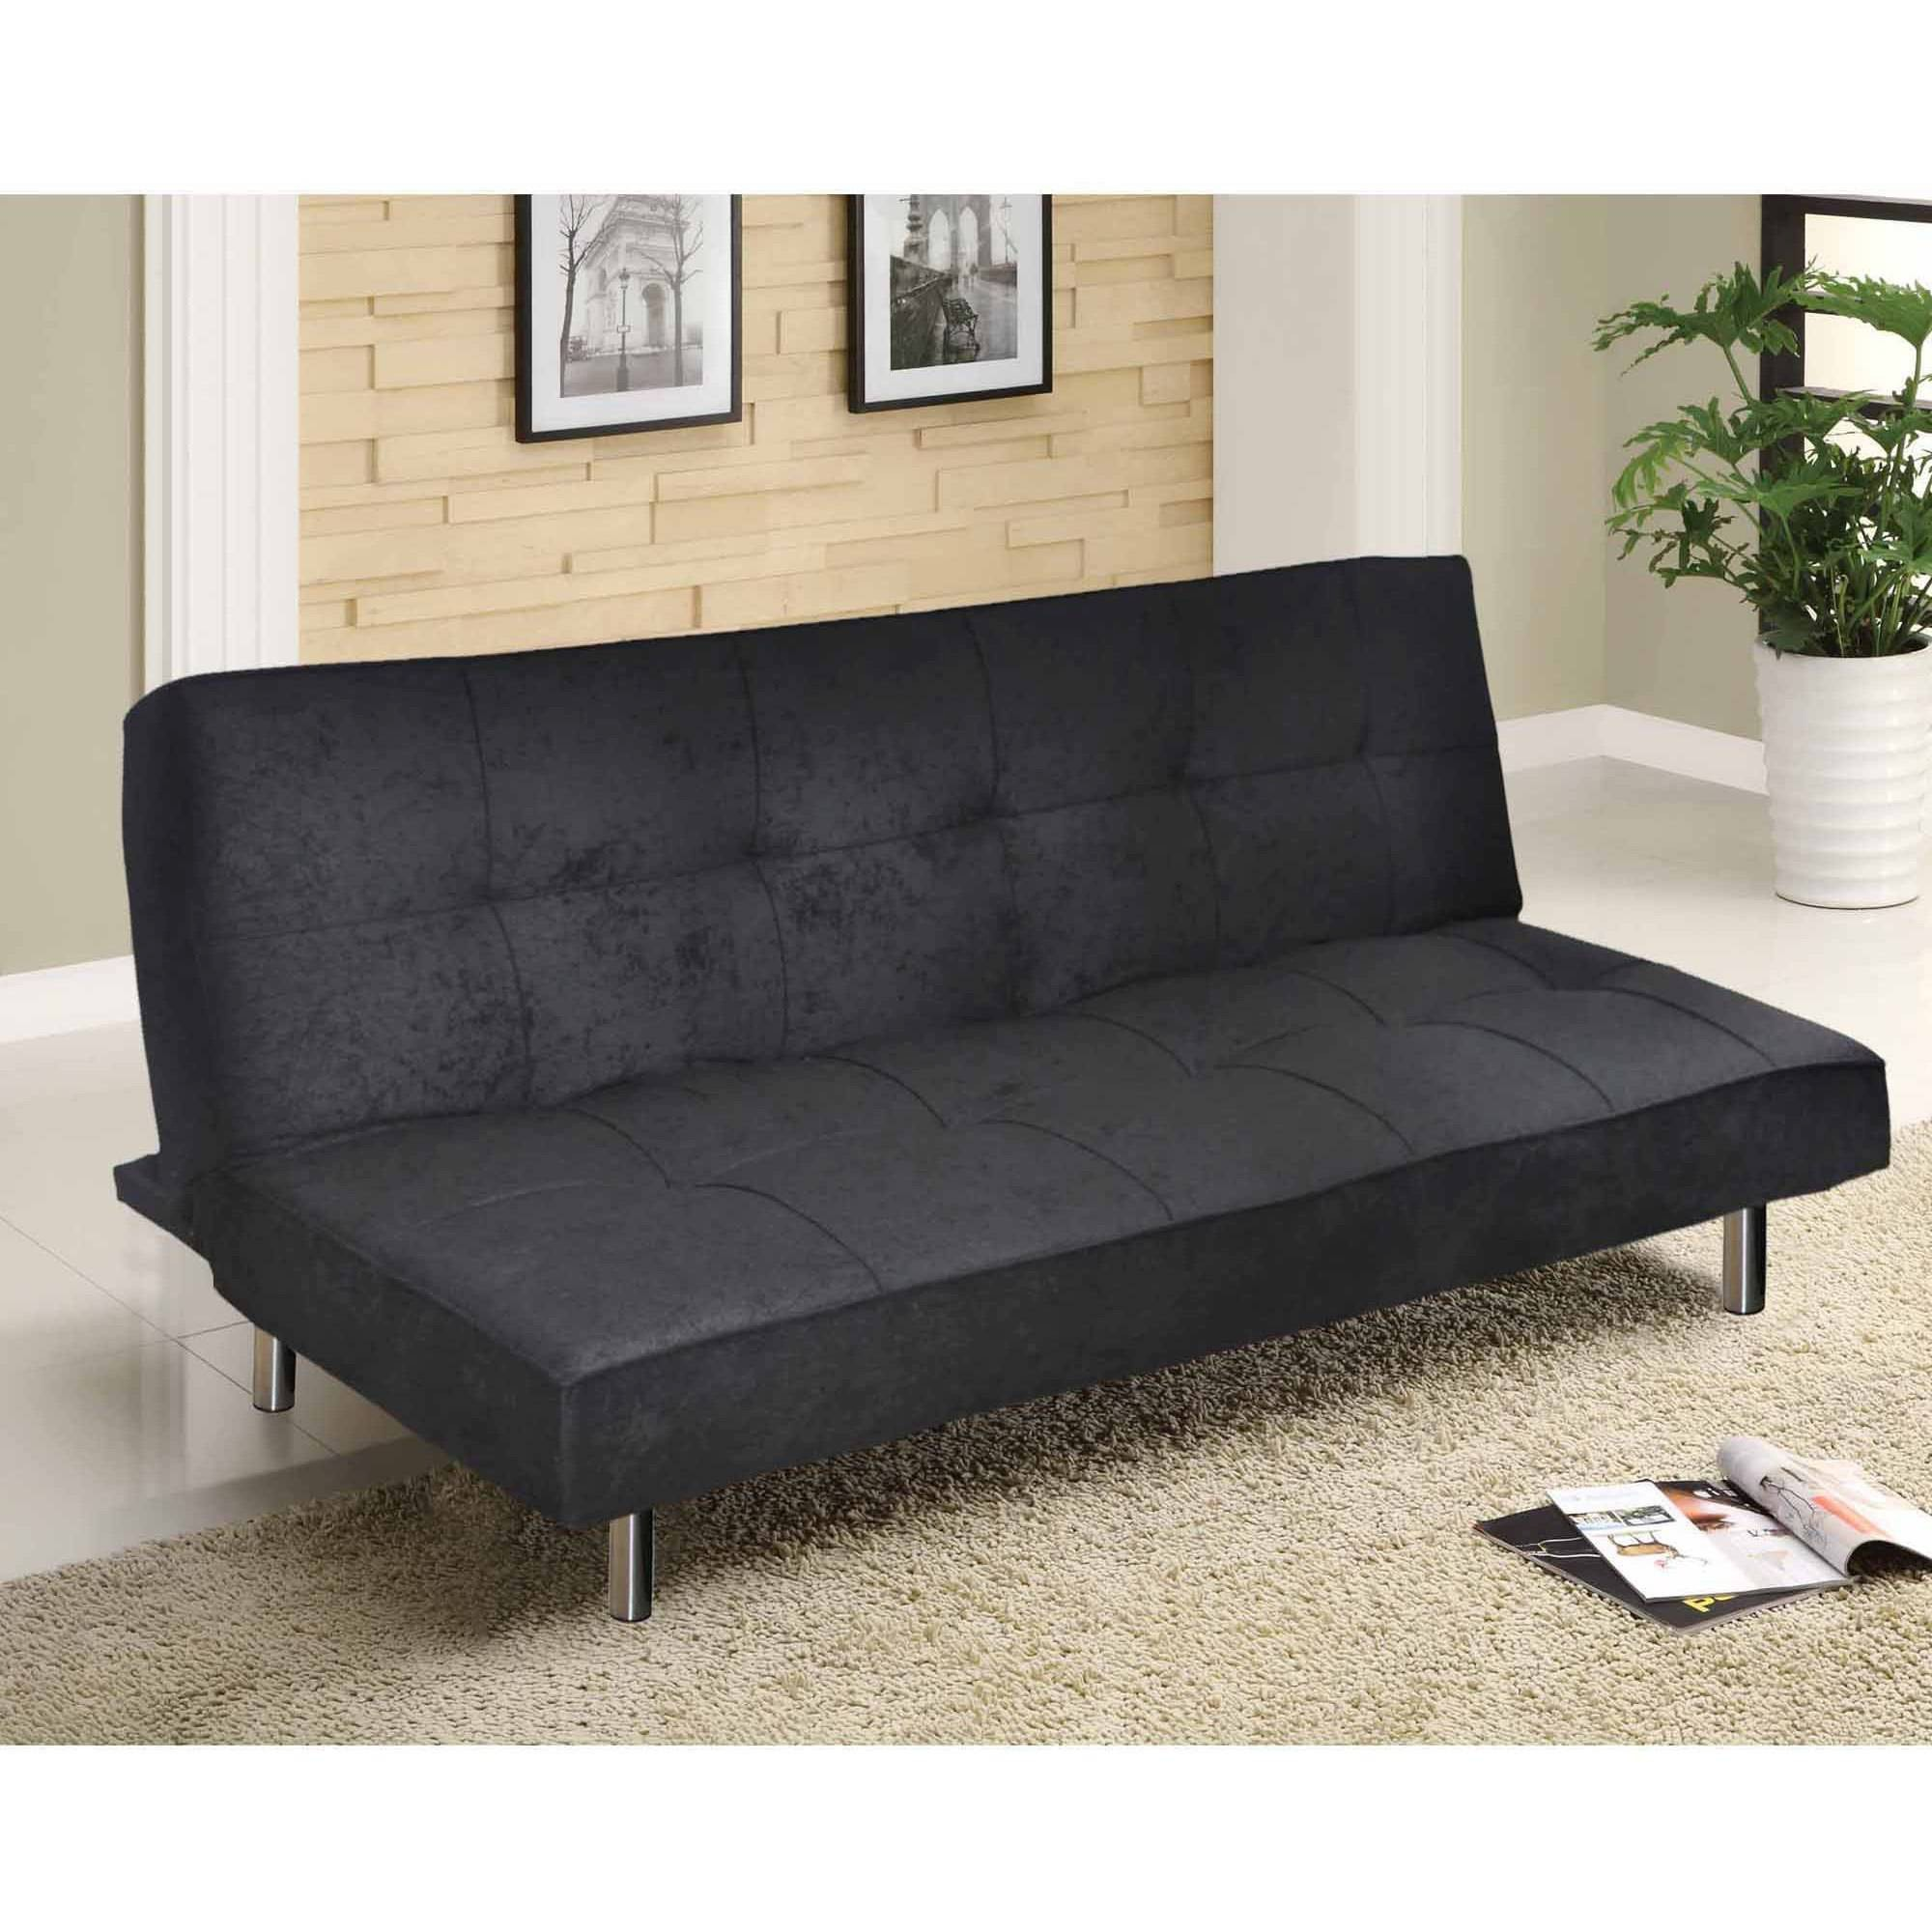 Modern Futon sofa Beautiful Best Choice Products Modern Entertainment Futon sofa Bed Fold Up Photograph